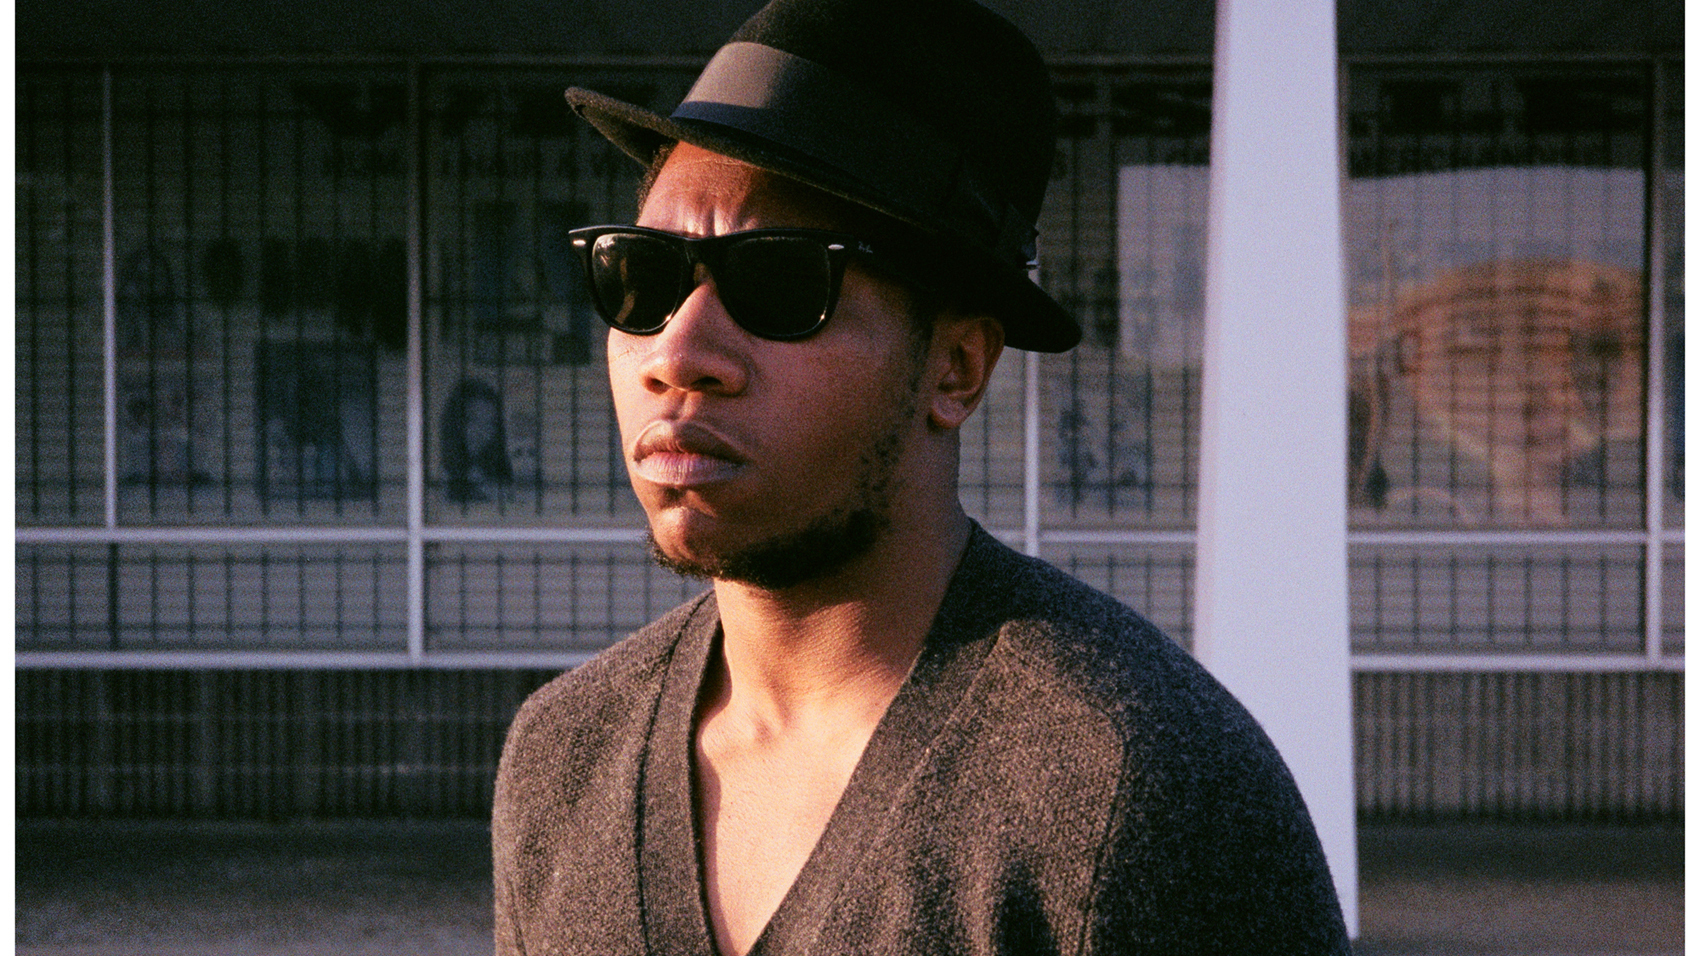 Willis Earl Beal on FUV Live...Tonight at 9